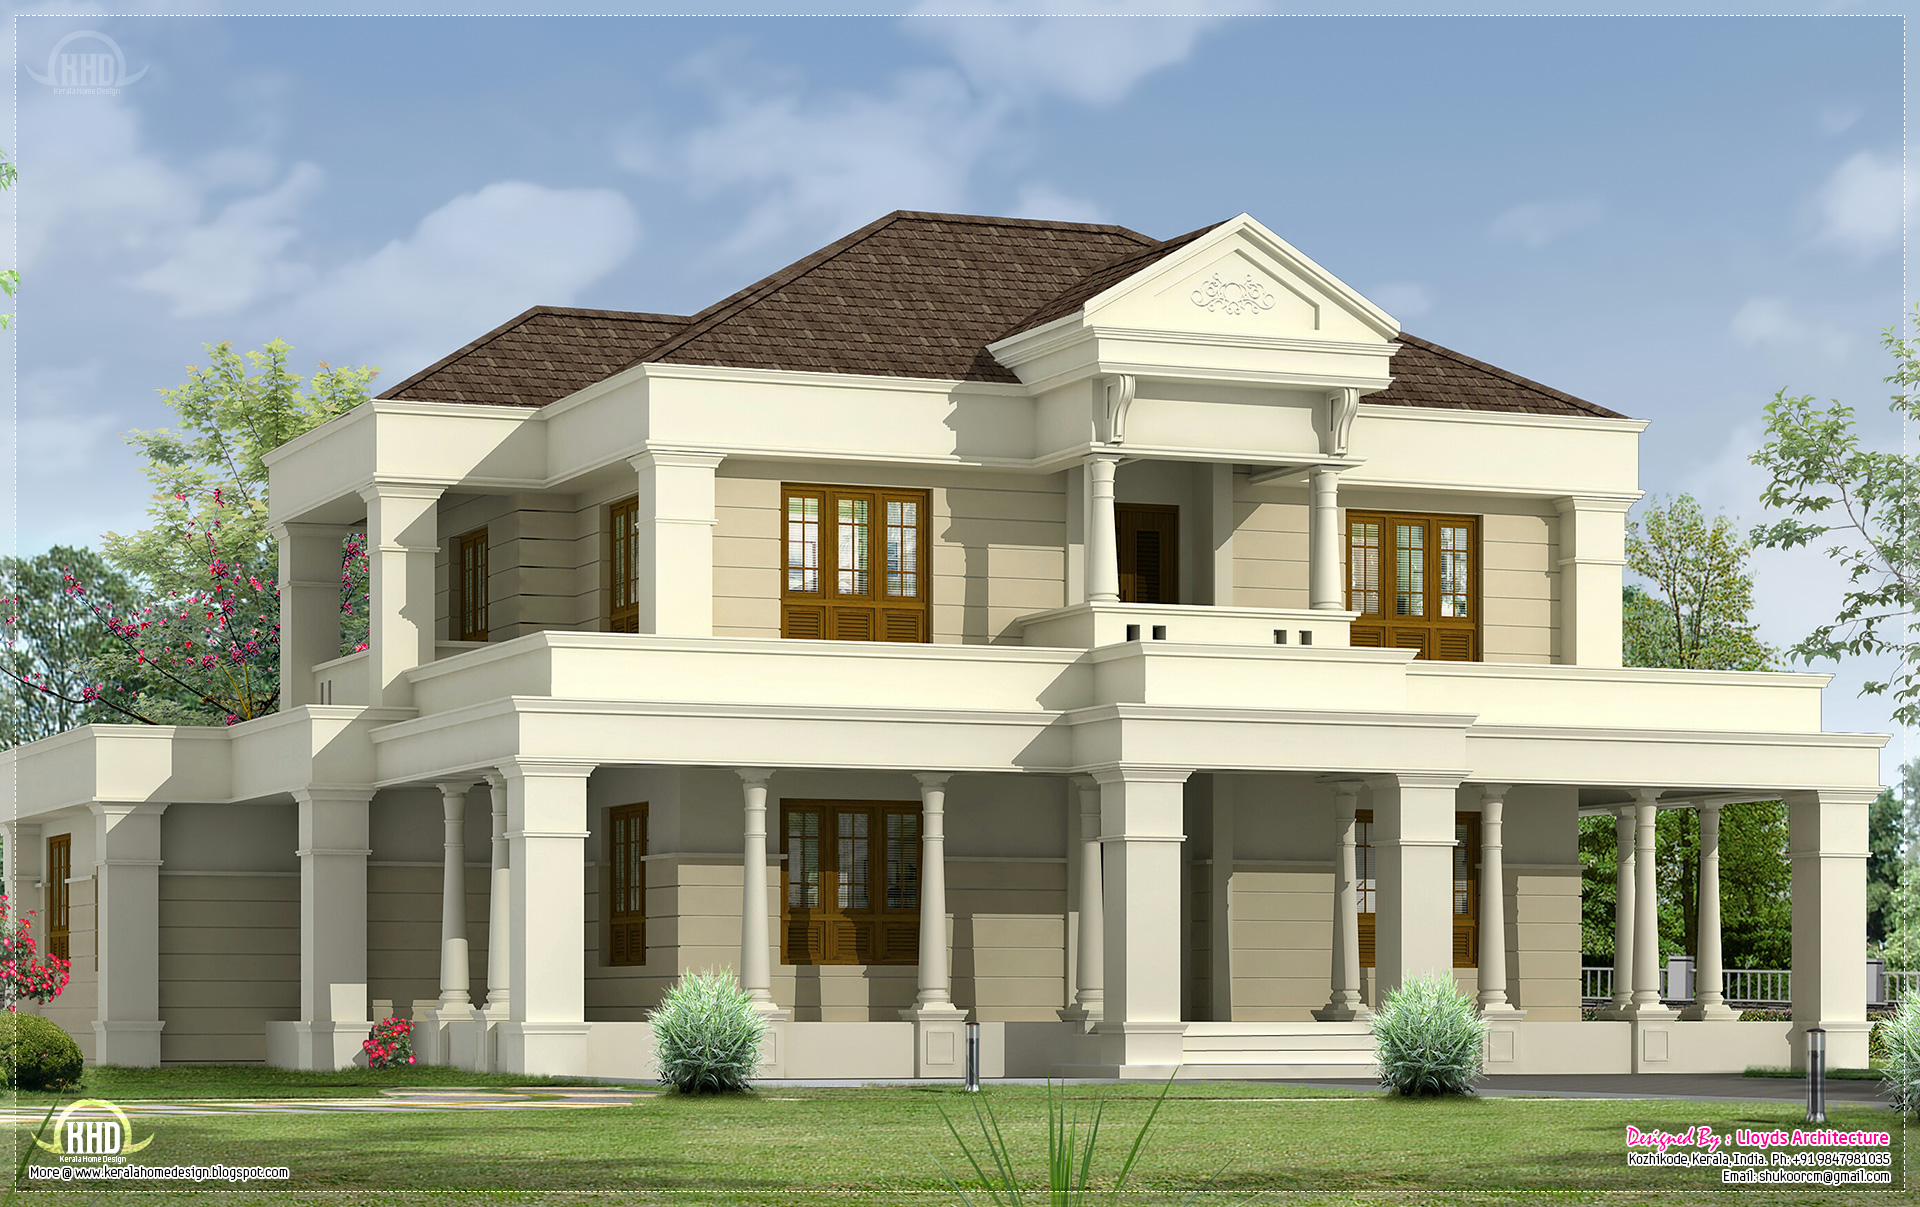 5 Bedroom Luxurious Villa Exterior Design Kerala Home Design And Floor Plans